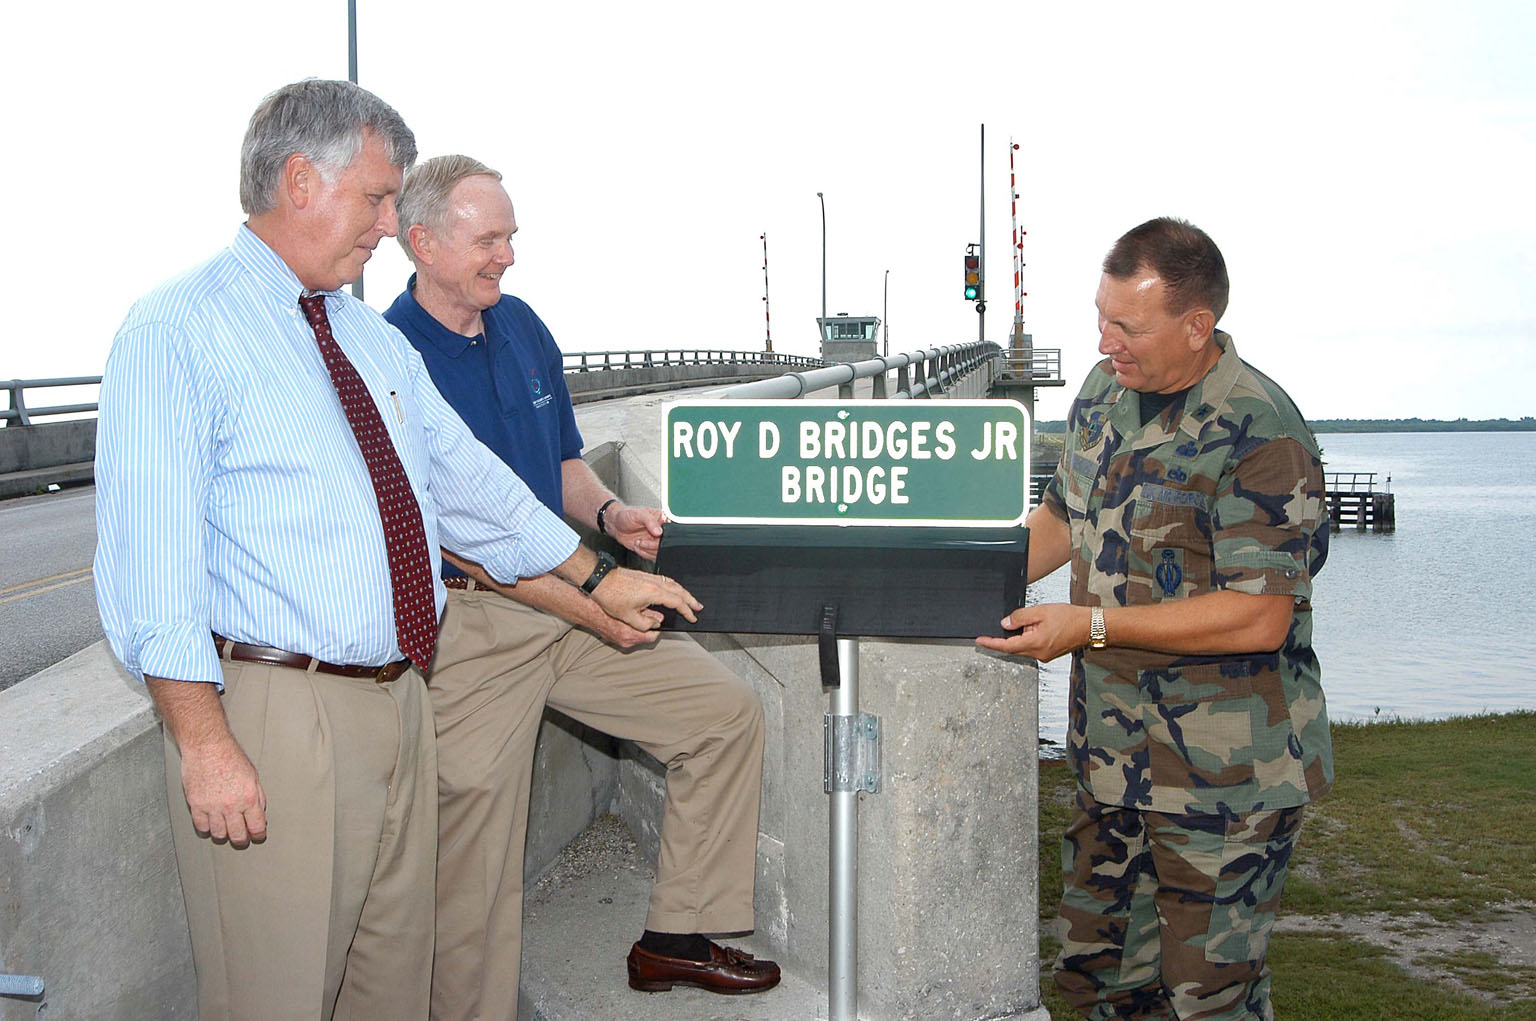 KENNEDY SPACE CENTER, FLA. - Incoming KSC Director James W. Kennedy (left) and departing KSC Director Roy D. Bridges Jr. (center) view the new sign on the NASA Causeway naming the bridge for Bridges who is leaving KSC to become the director of NASA's Langley Research Center, Hampton, Va. At right is the 45th Space Wing Commander Brig. Gen. J. Gregory Pavlovich. The bridge spans the Banana River on the NASA Causeway and connects Kennedy Space Center and Cape Canaveral Air Force Station.